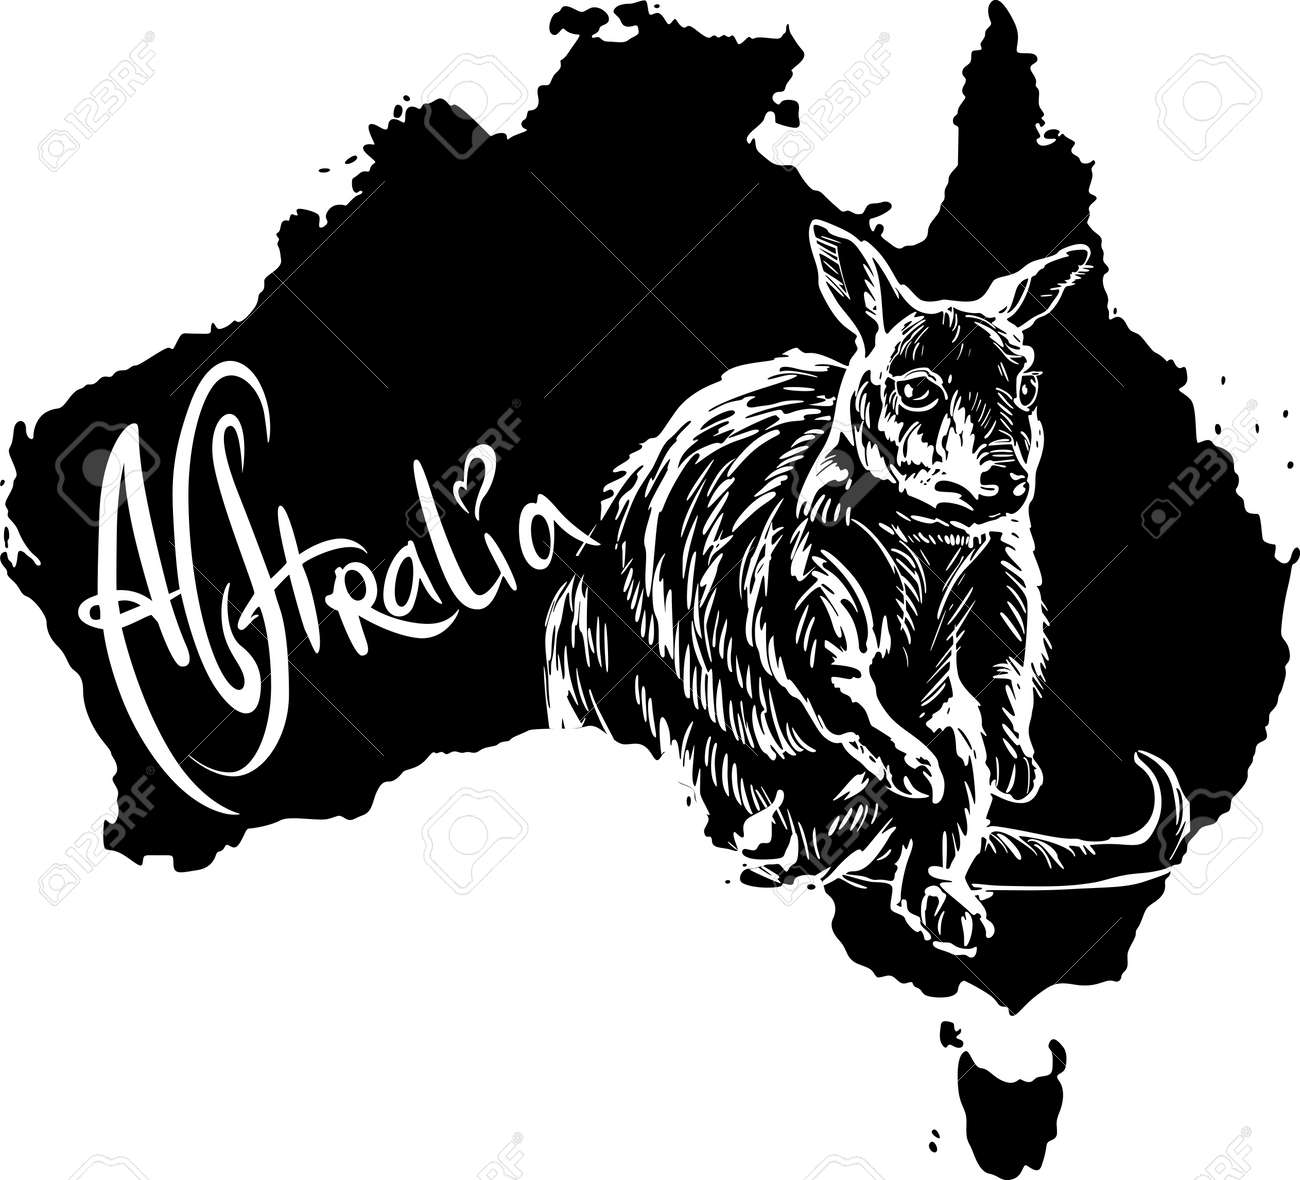 Wallaby on map of Australia. Black and white vector illustration. Stock Vector - 15783329